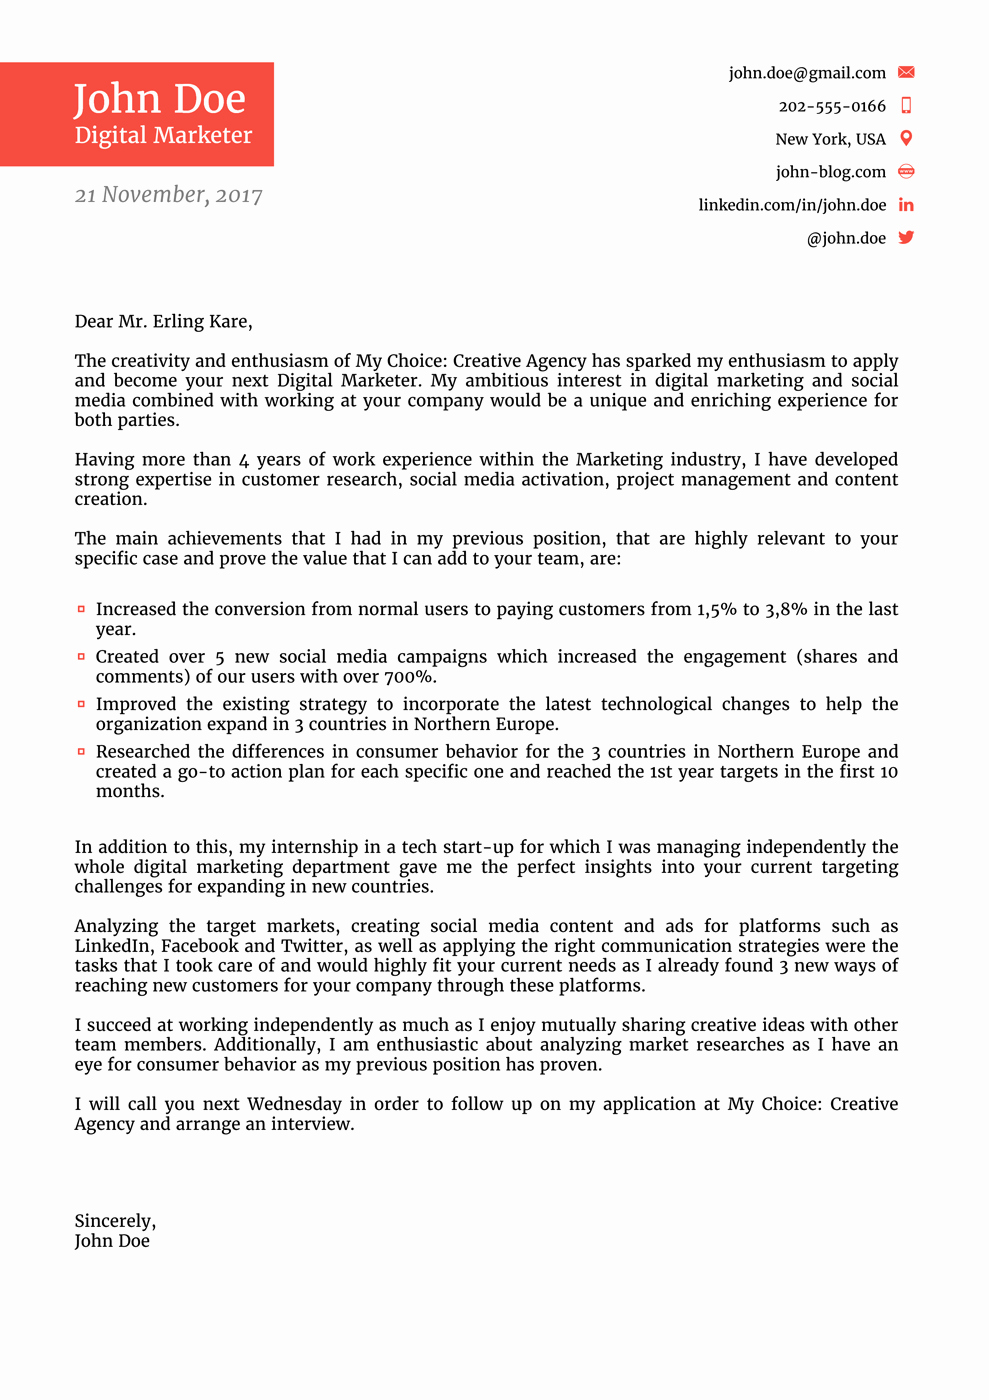 Cover Letter for New Career Lovely 8 Cover Letter Templates for 2019 [that Hr Will Love ]